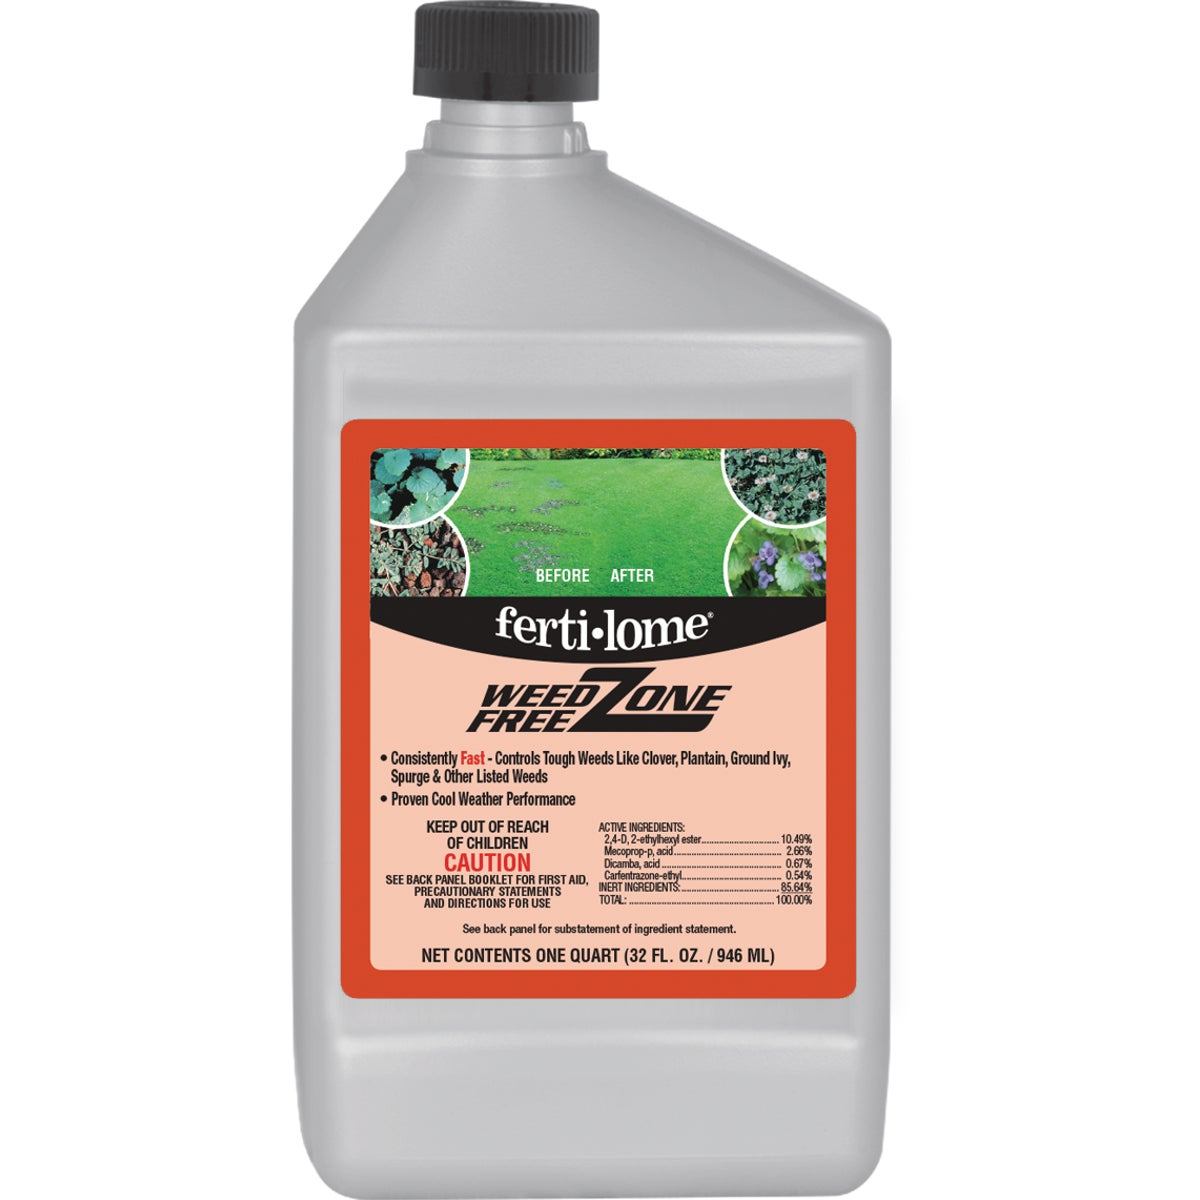 32OZ WEED-FREE ZONE - 10525 by Vpg Fertilome